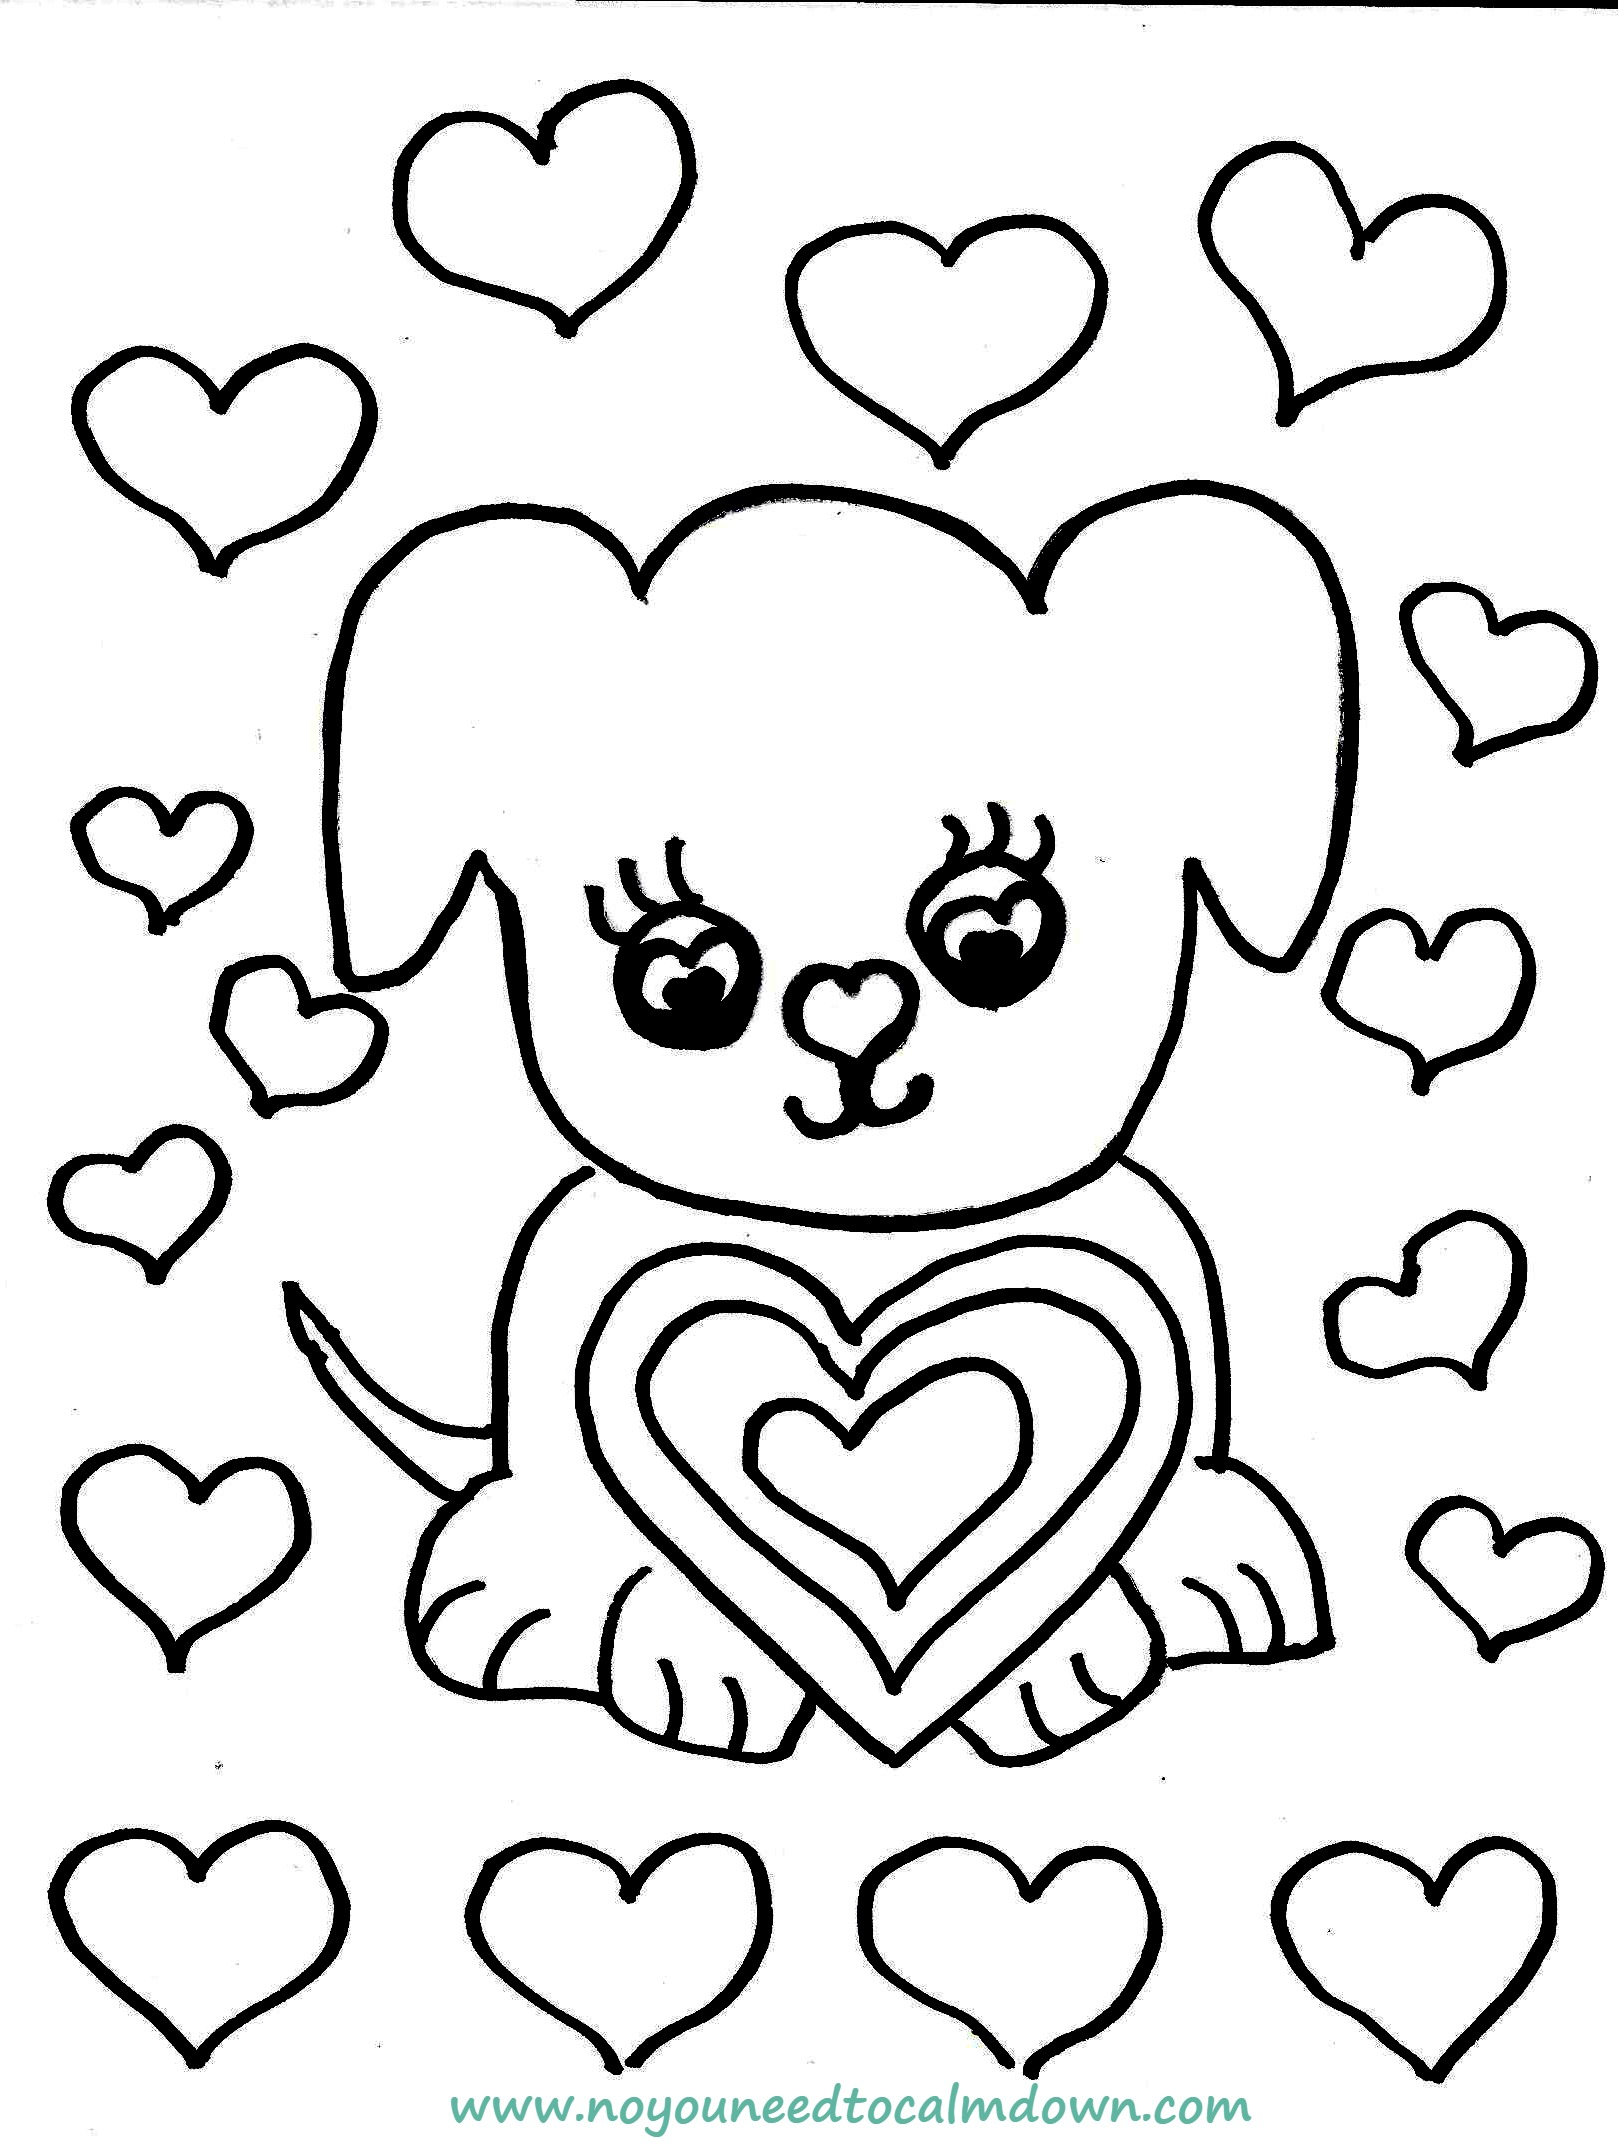 calming coloring pages for children - photo#1